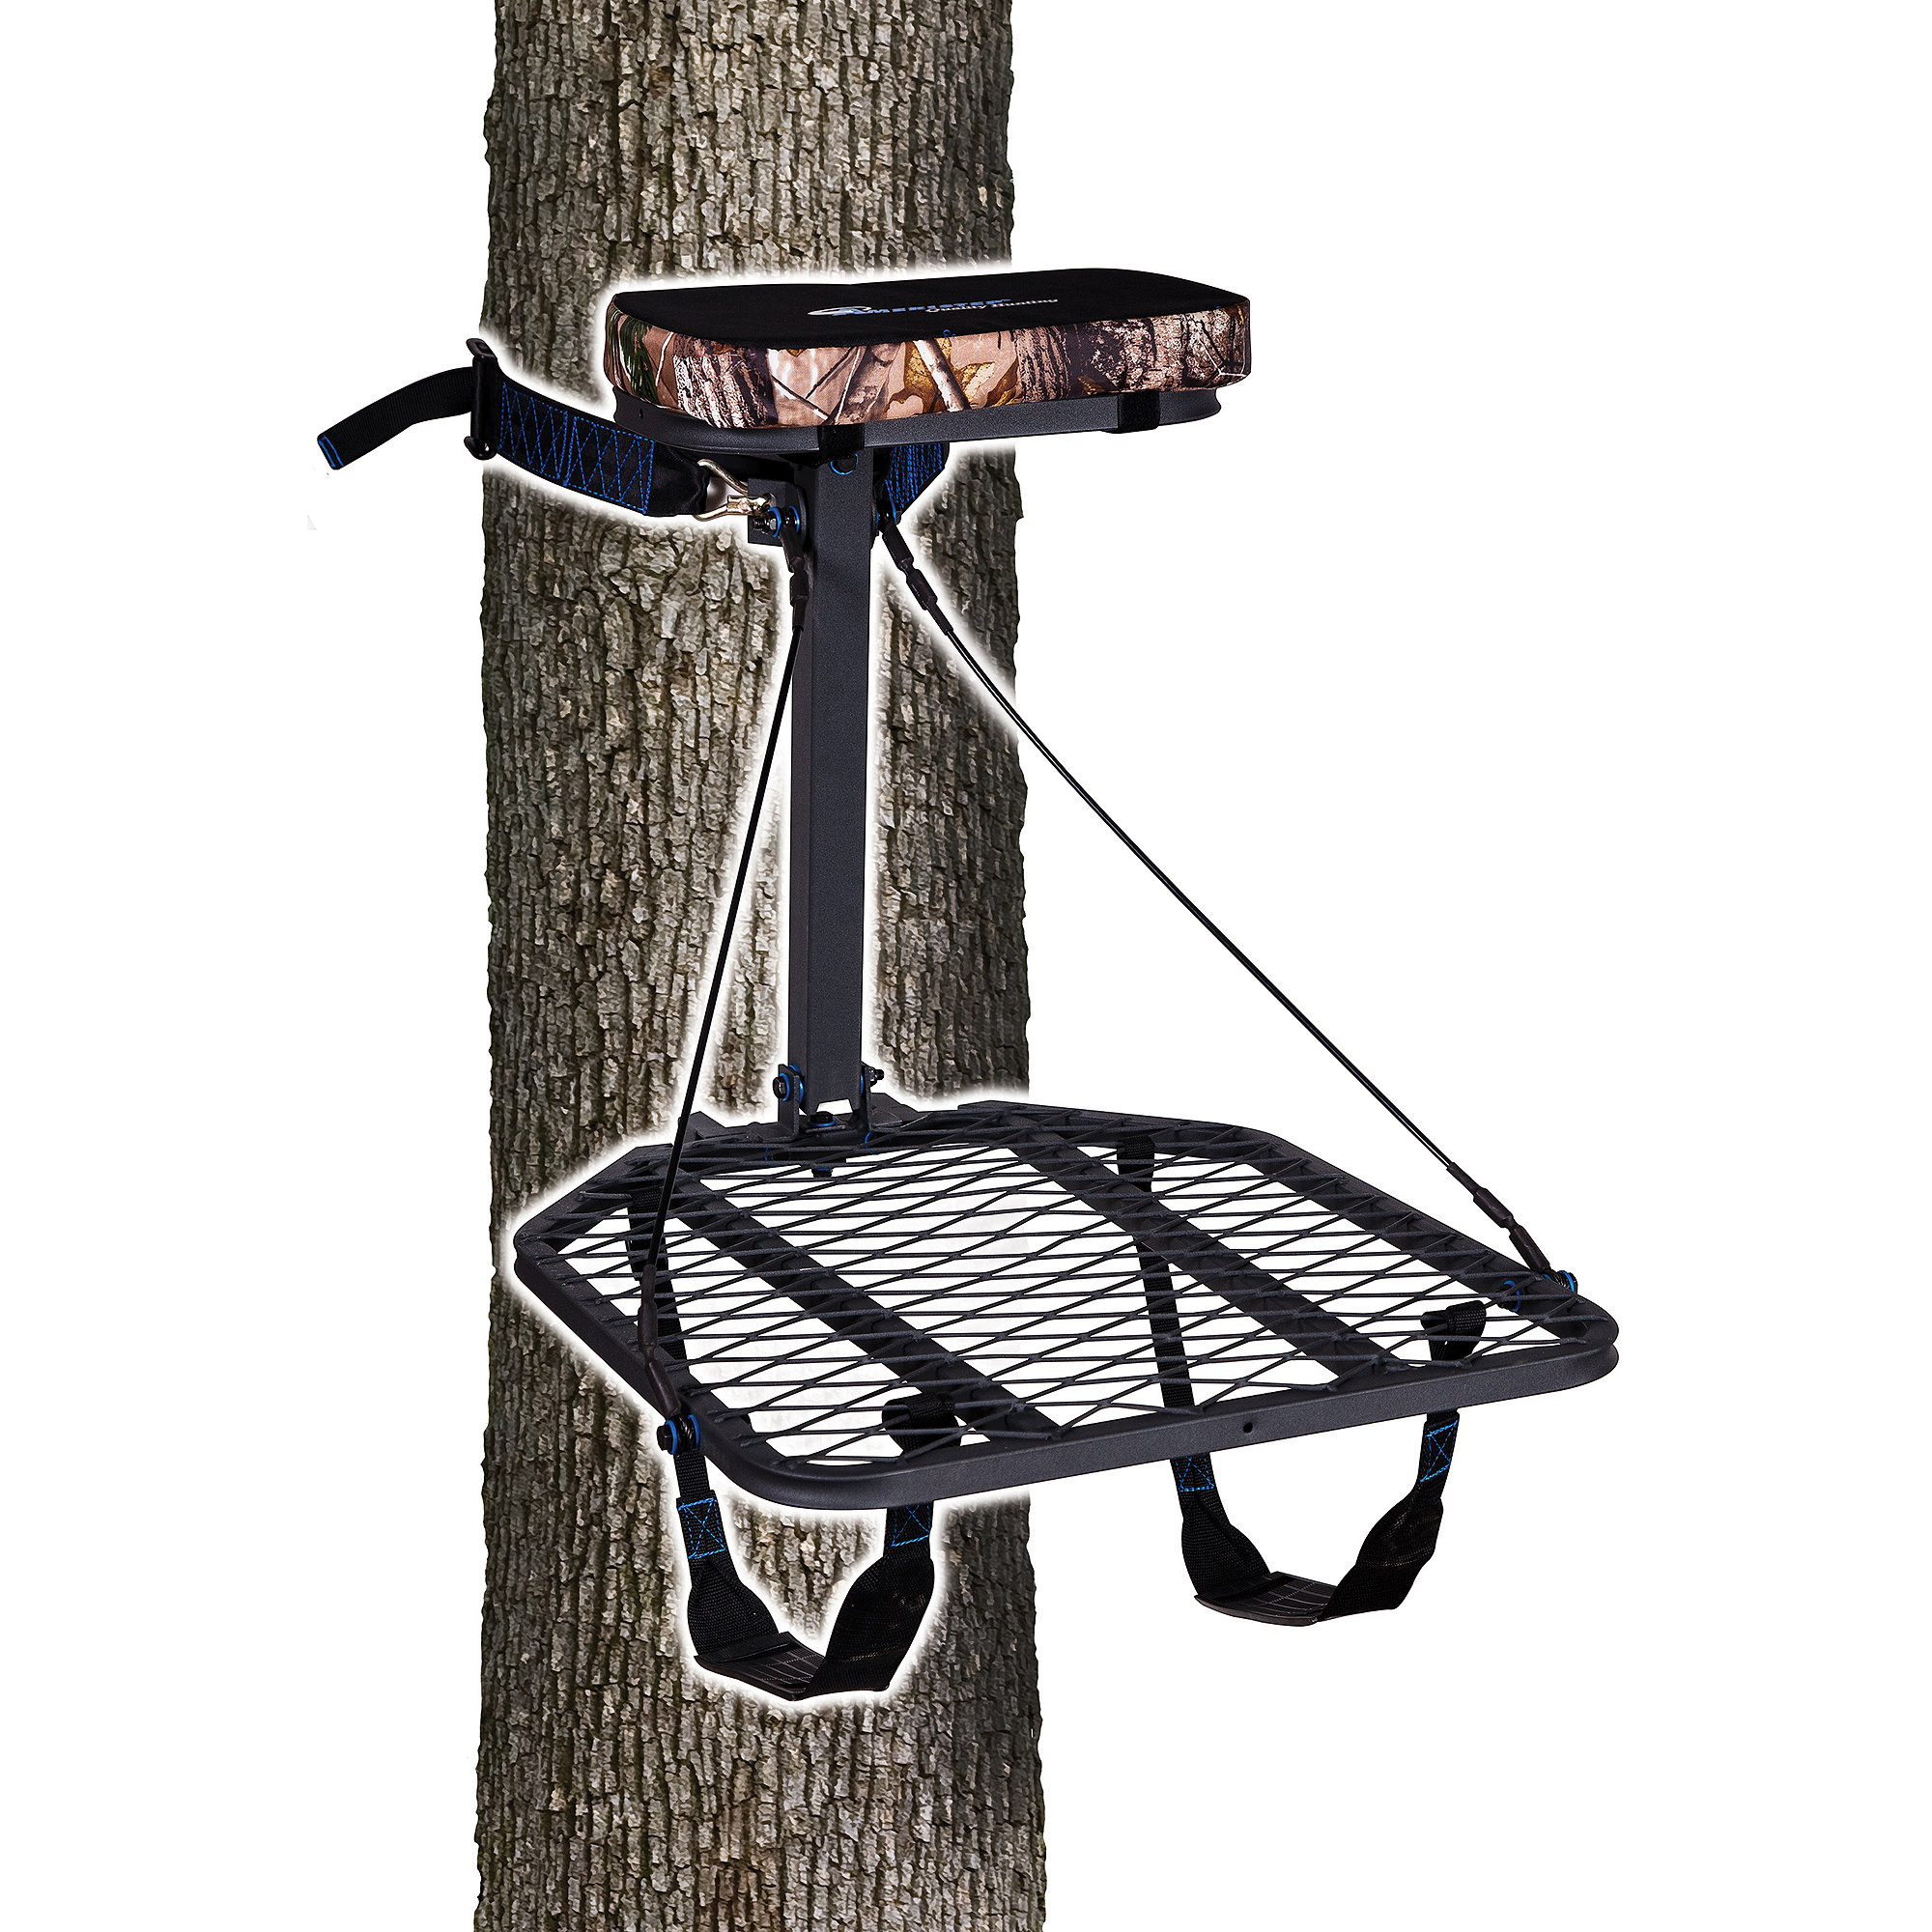 Ameristep Hang-On Treestand